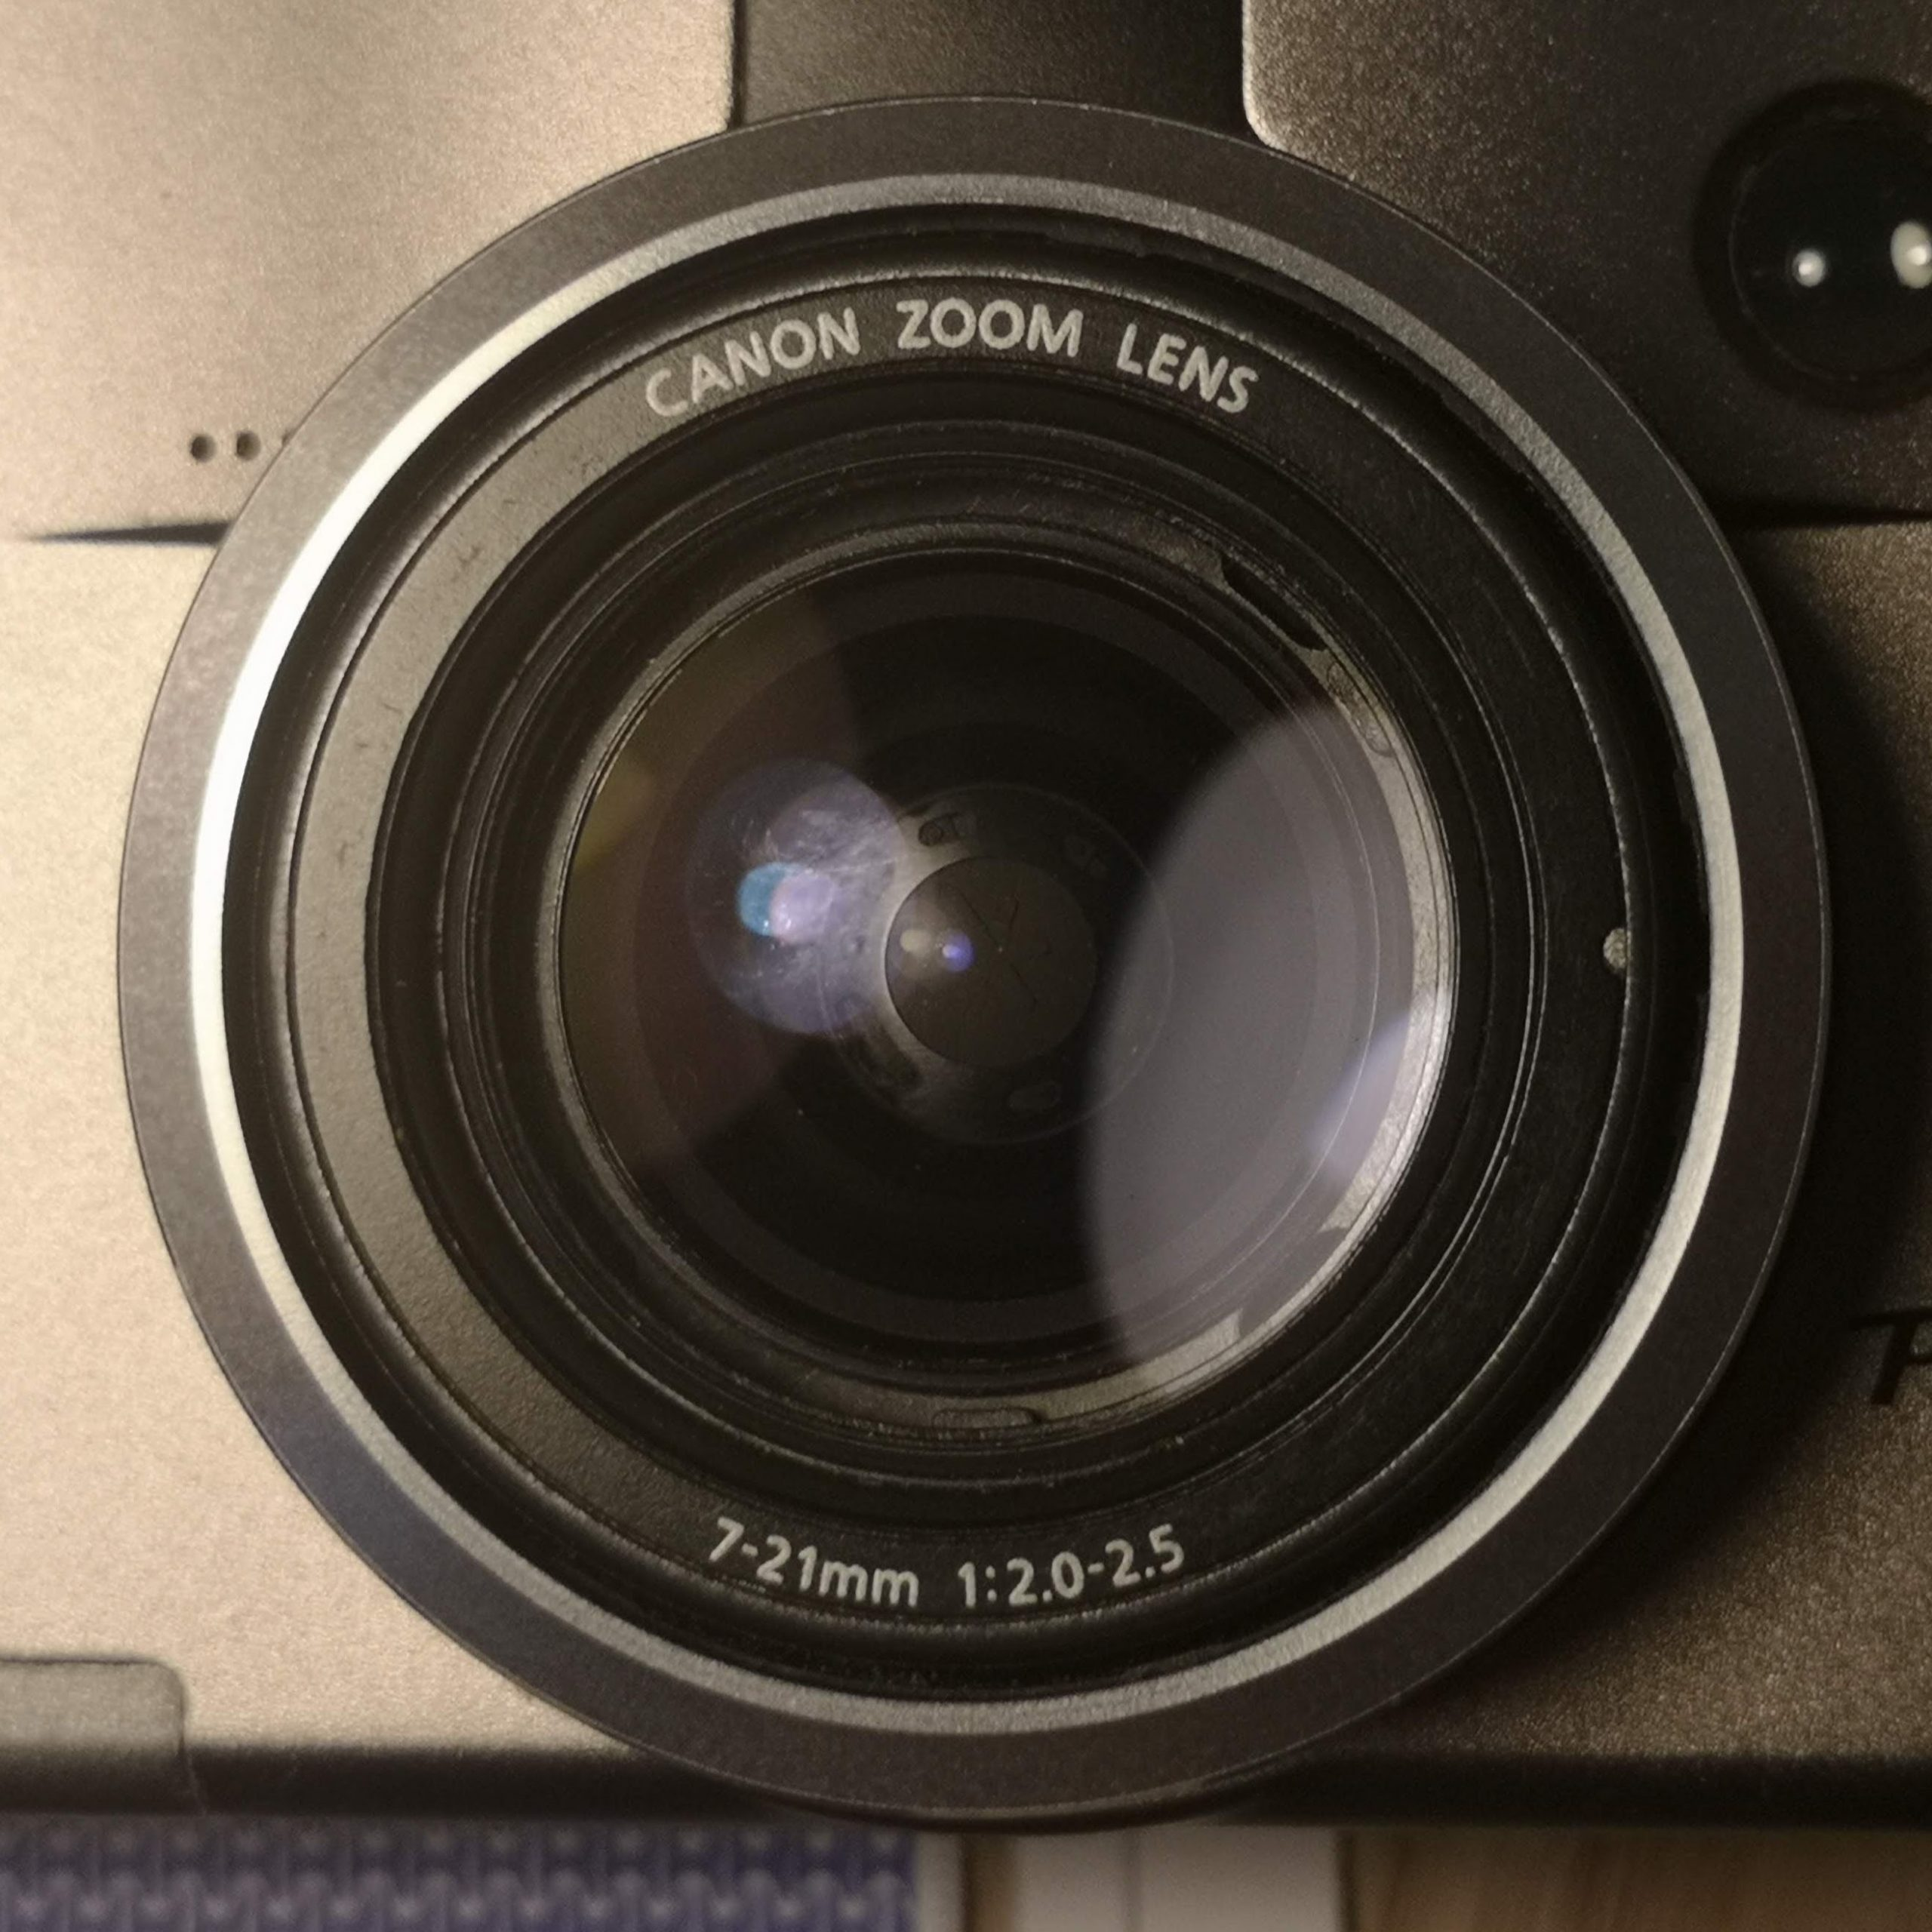 The lens but is it new ?